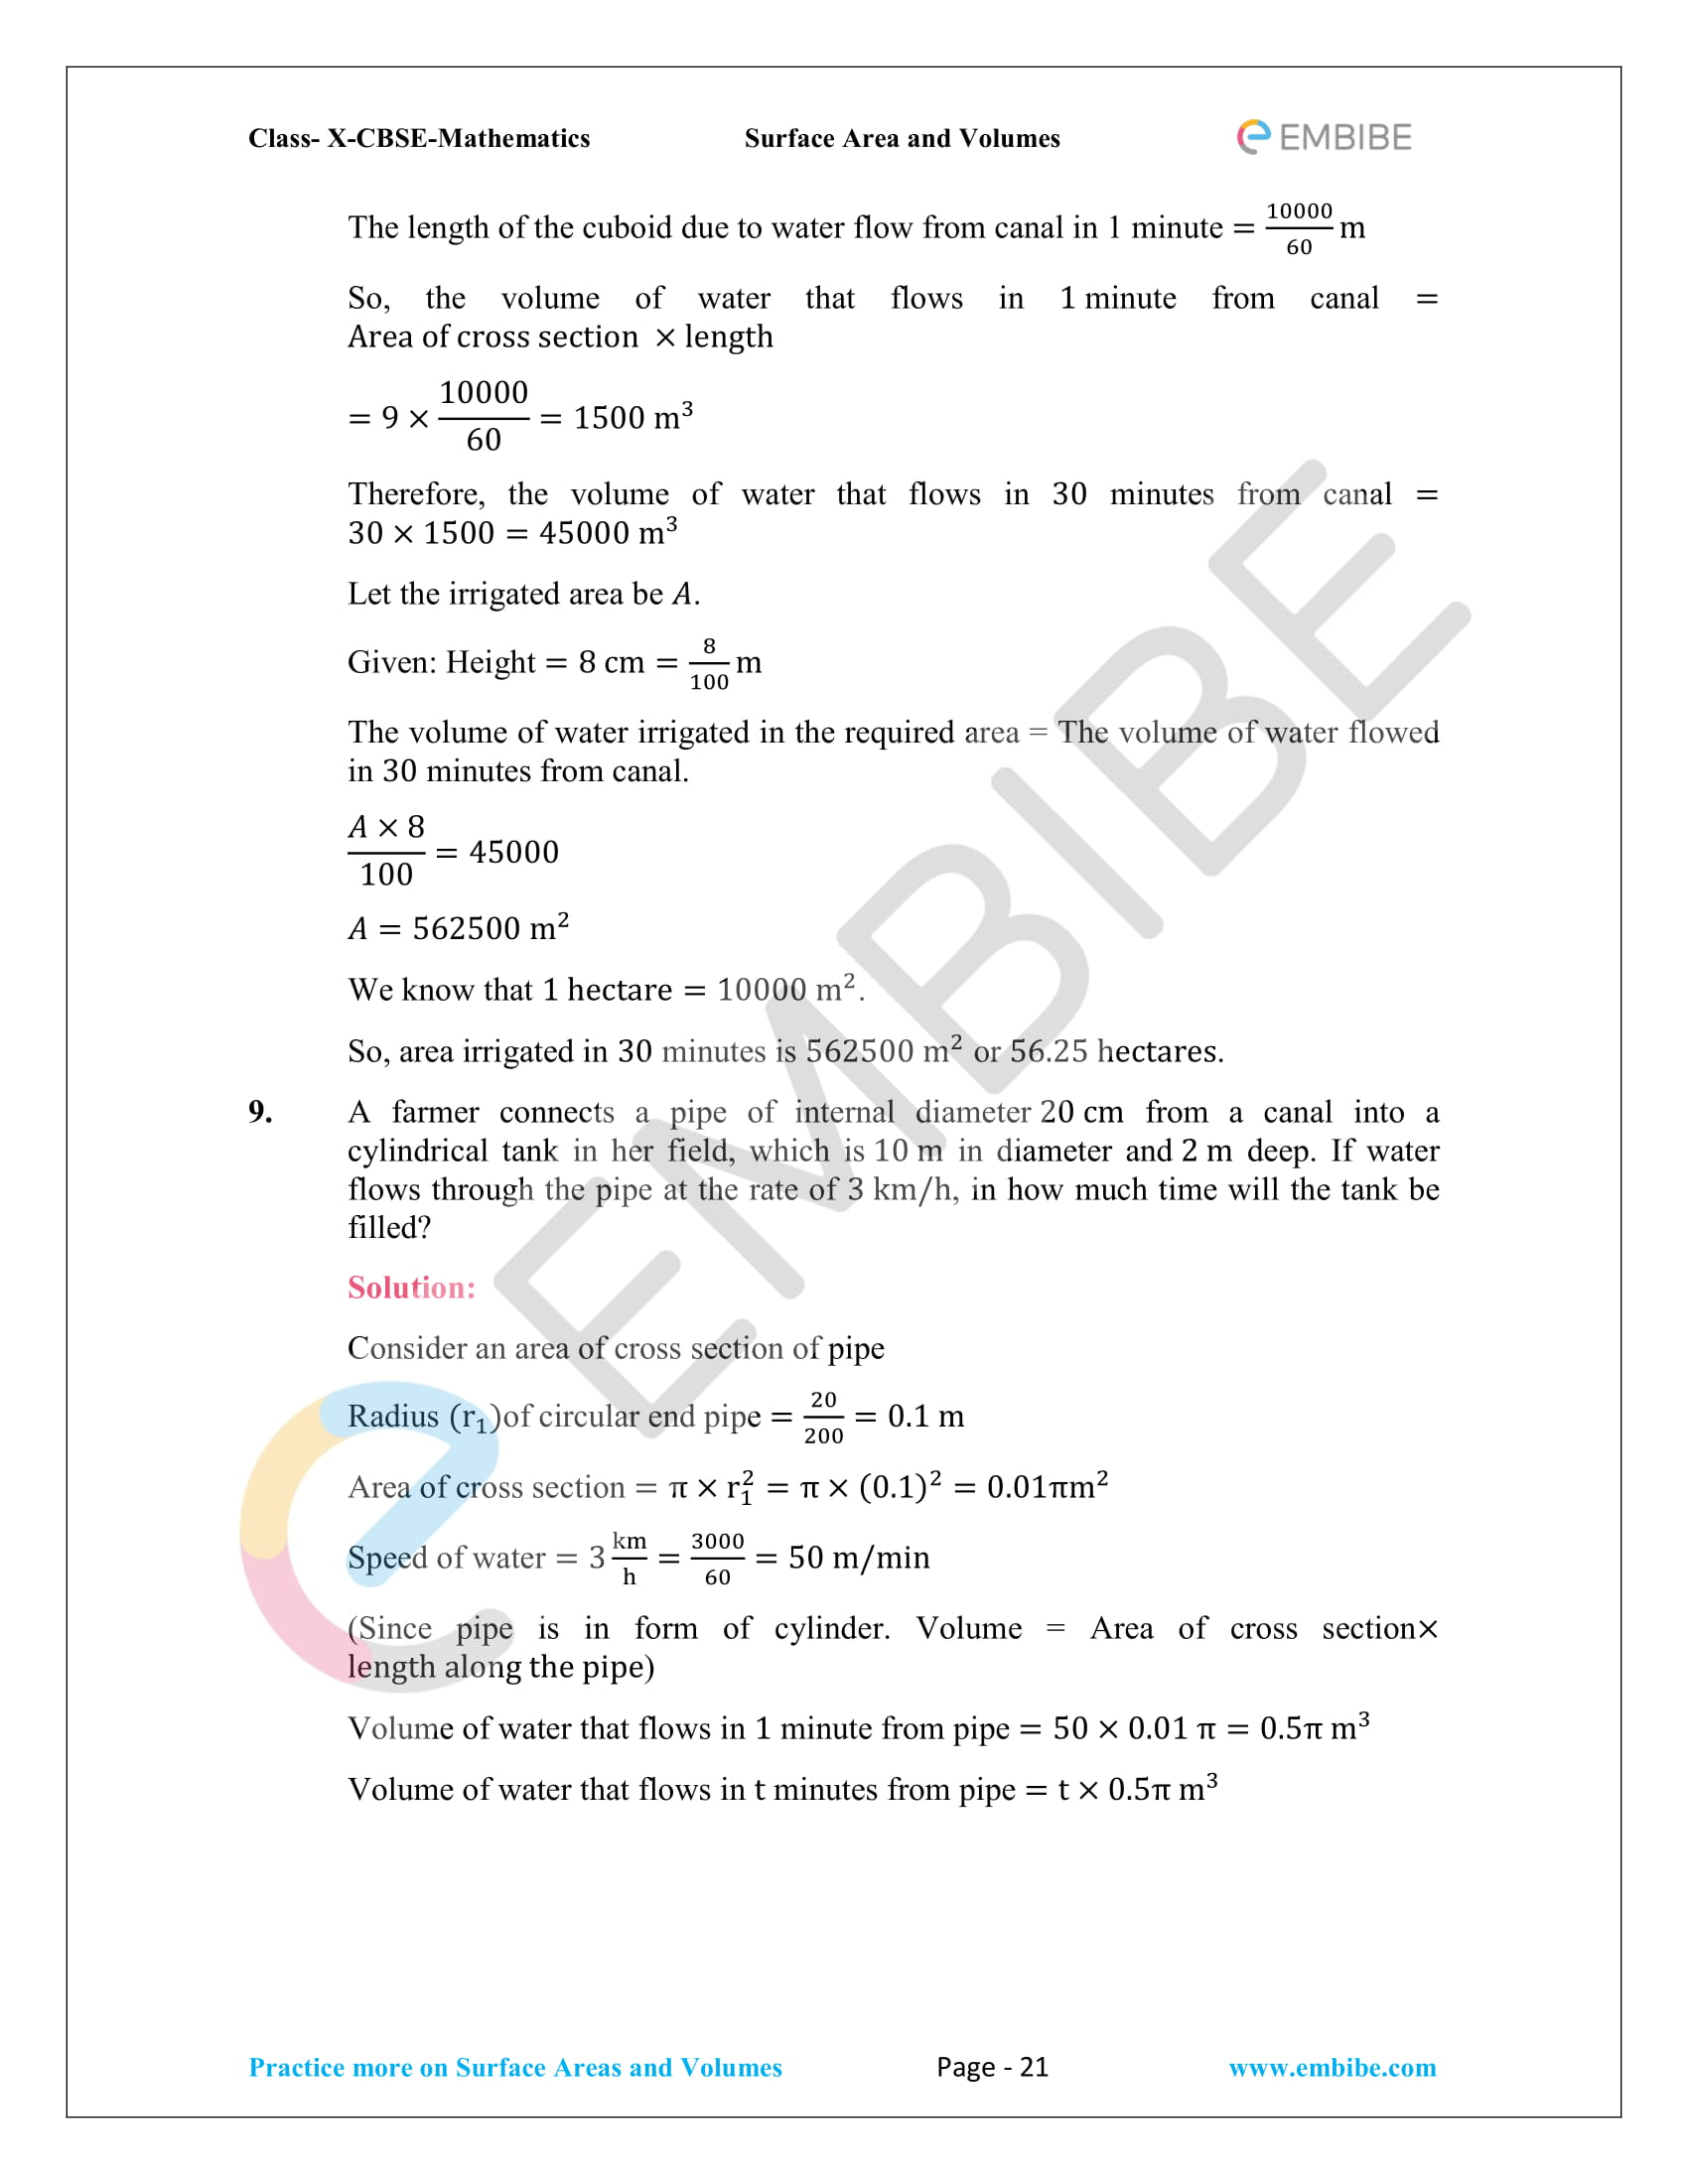 NCERT Solutions For Class 10 Maths Chapter 13: Surface Areas